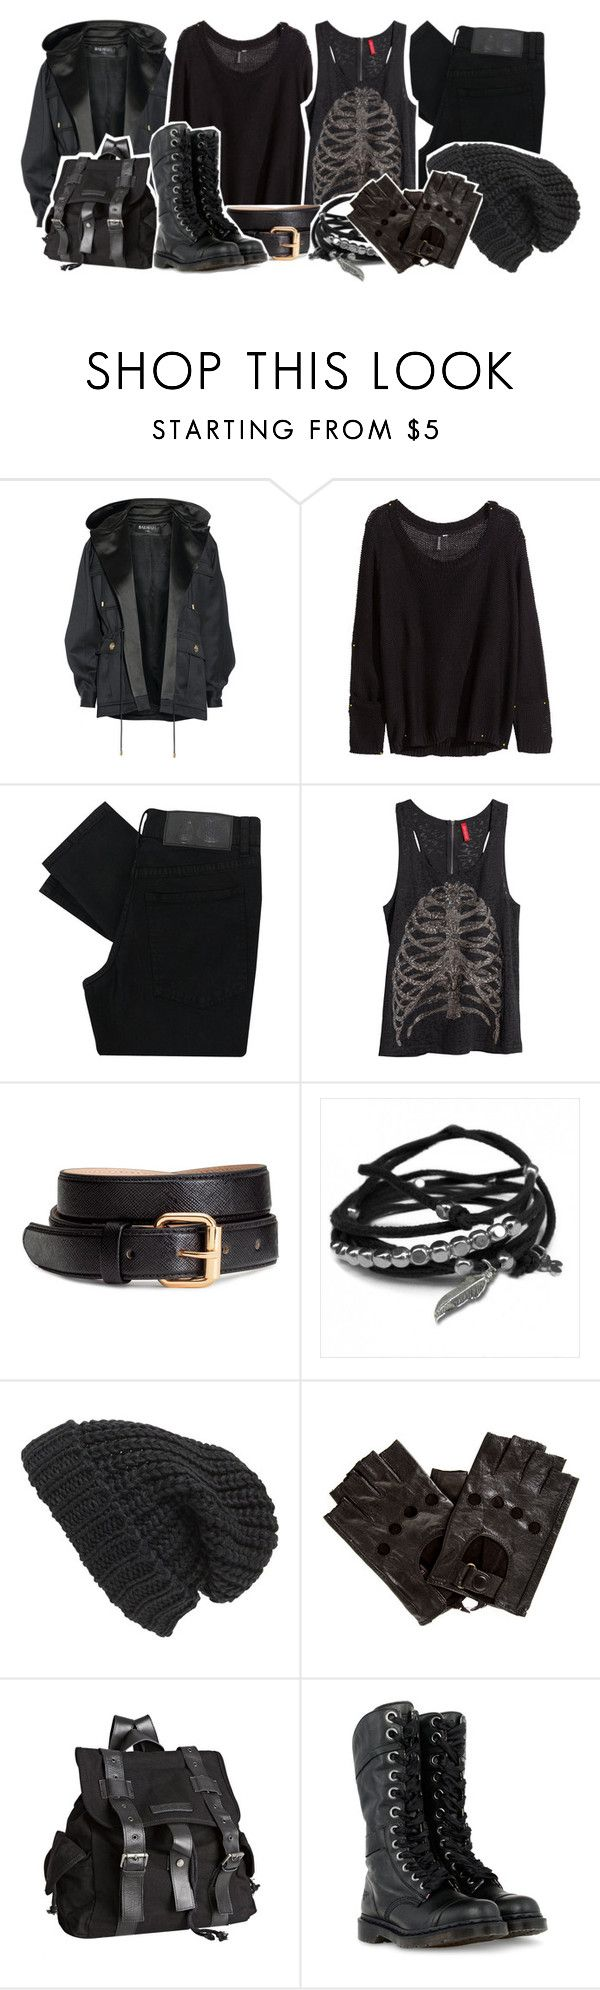 """""""Camp Half Blood: Denying your roots"""" by saffire9975 ❤ liked on Polyvore featuring Balmain, H&M, Cheap Monday, Gag & Lou, Phase 3, Joe's Jeans and Dr. Martens"""